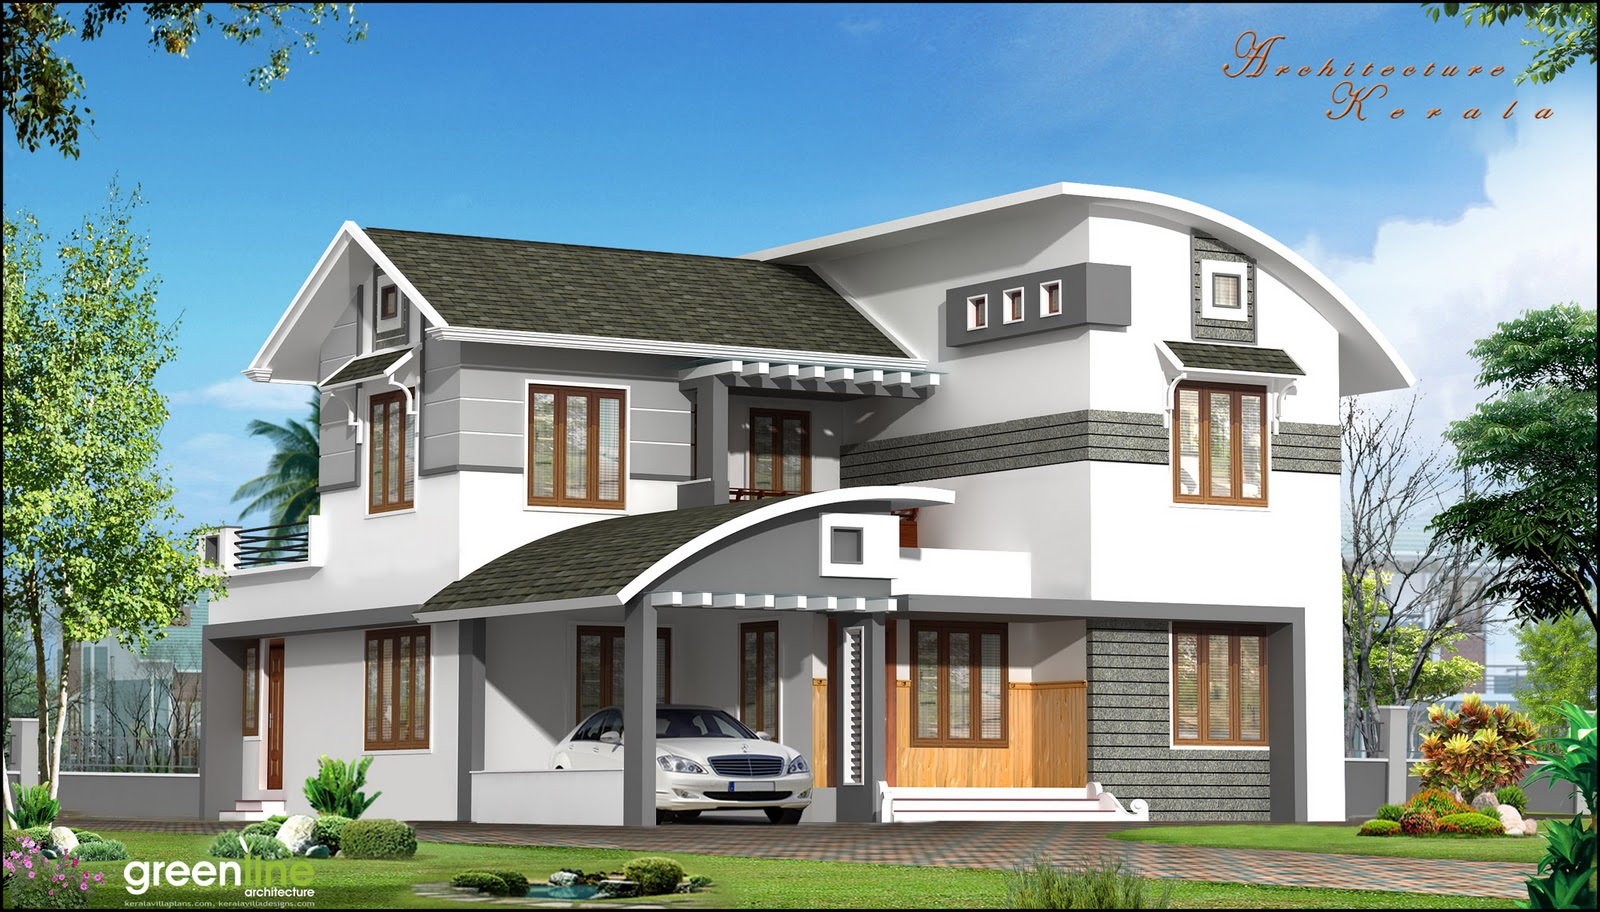 A BEAUTIFUL HOUSE ELEVATION